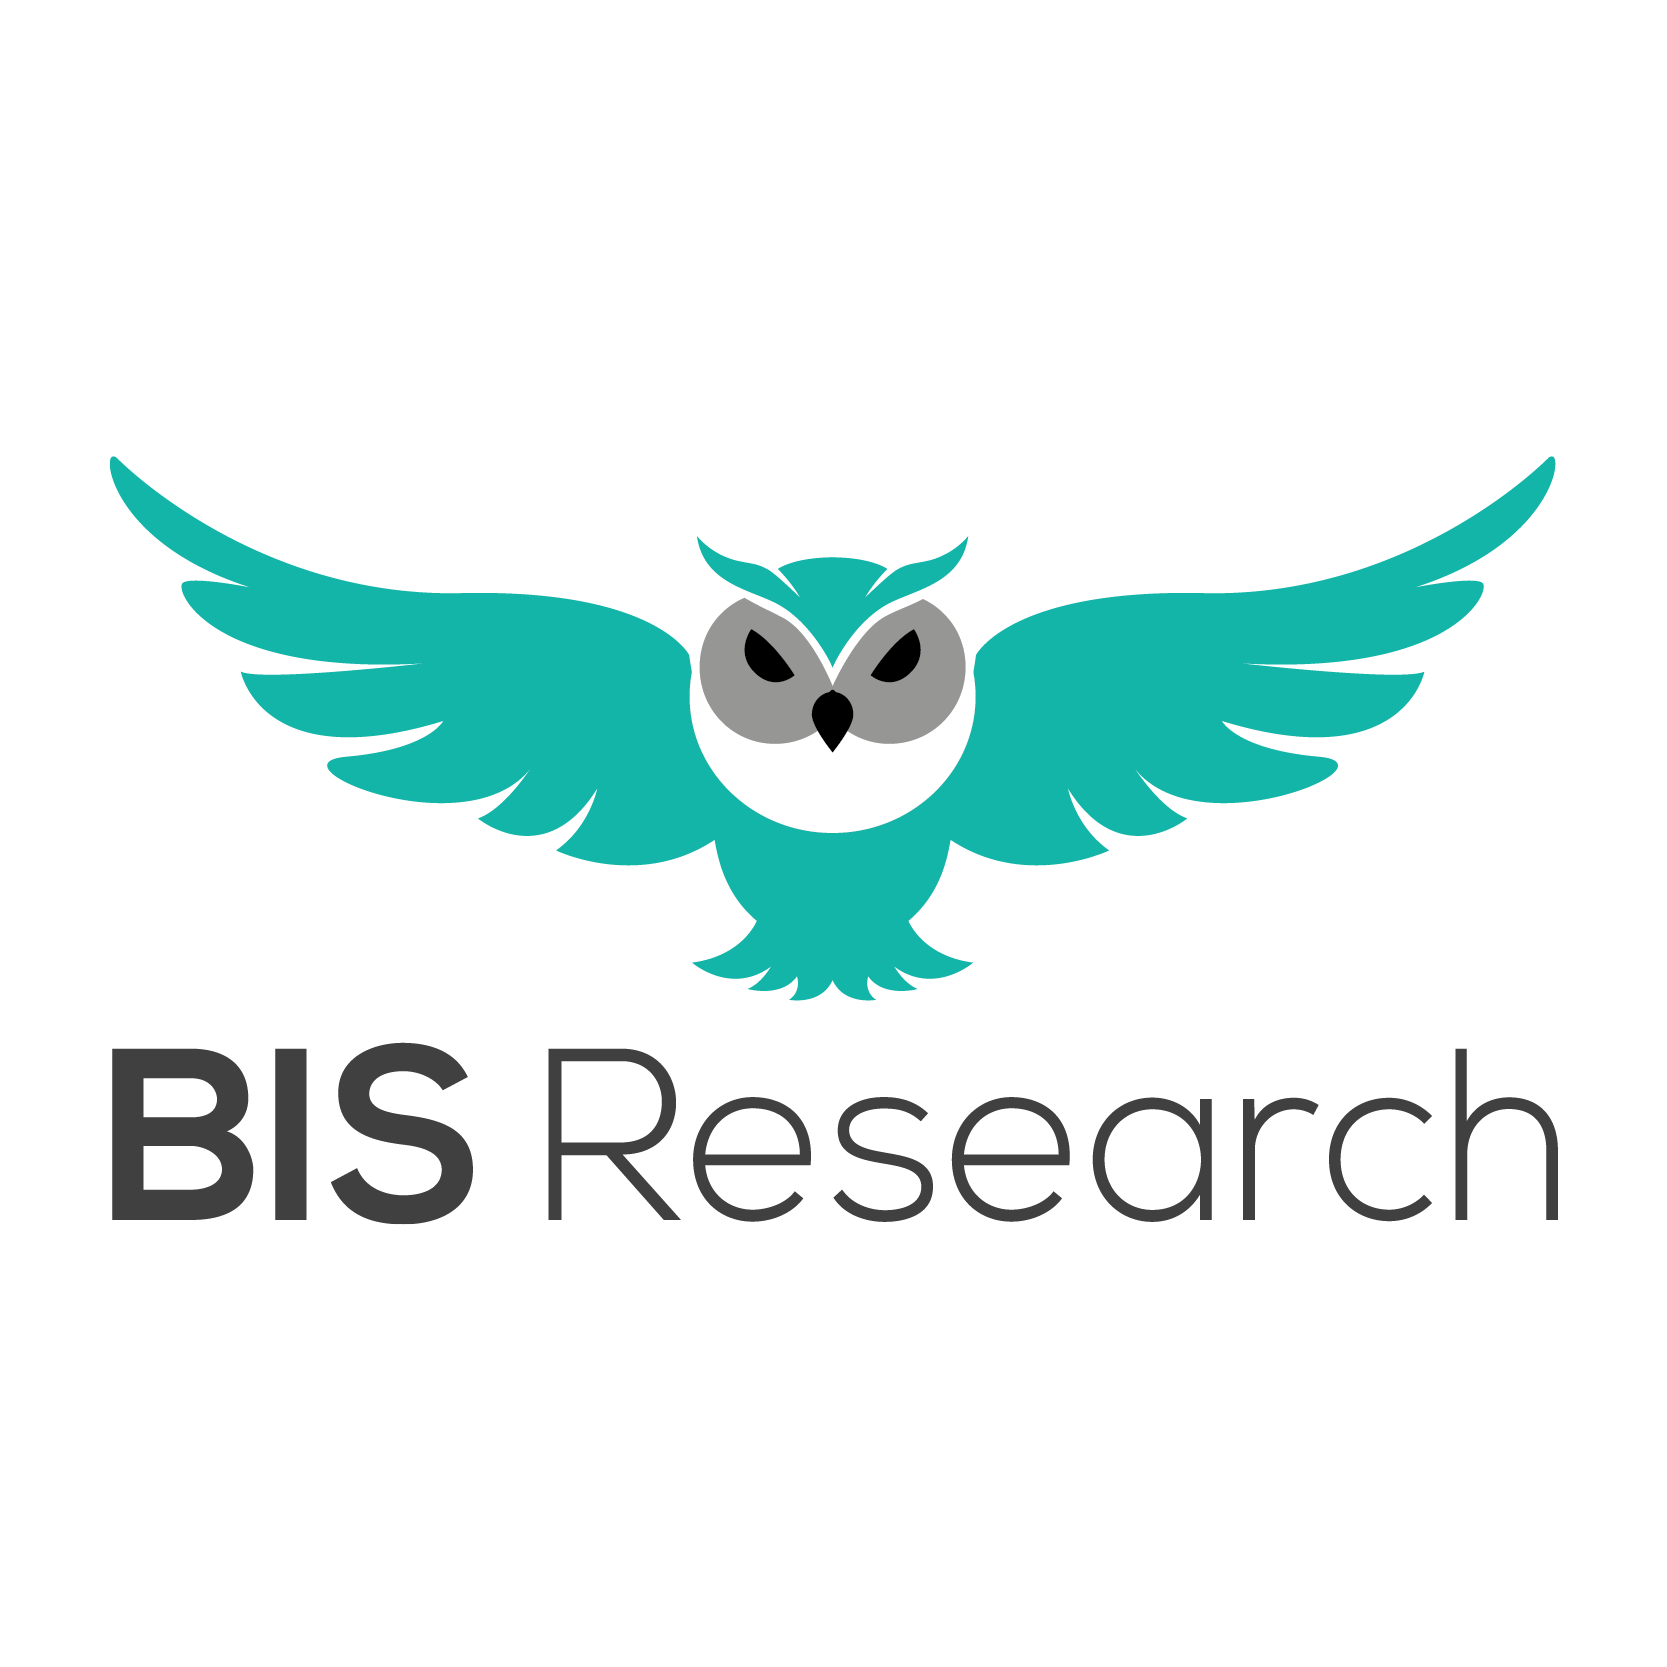 bisresearch